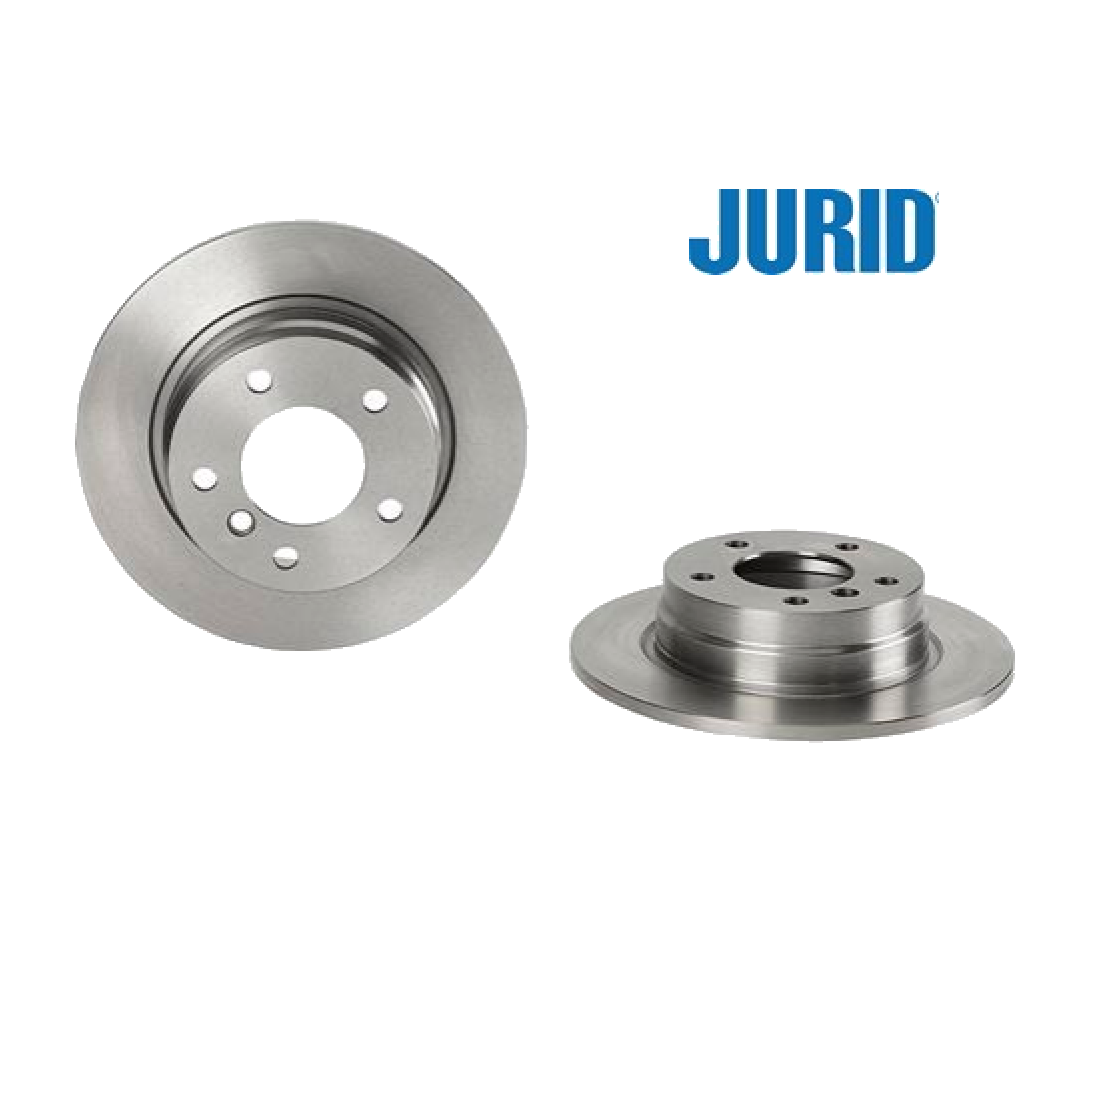 PAIR OF REAR BRAKE DISCS BMW 3 JURID FOR 34211158936